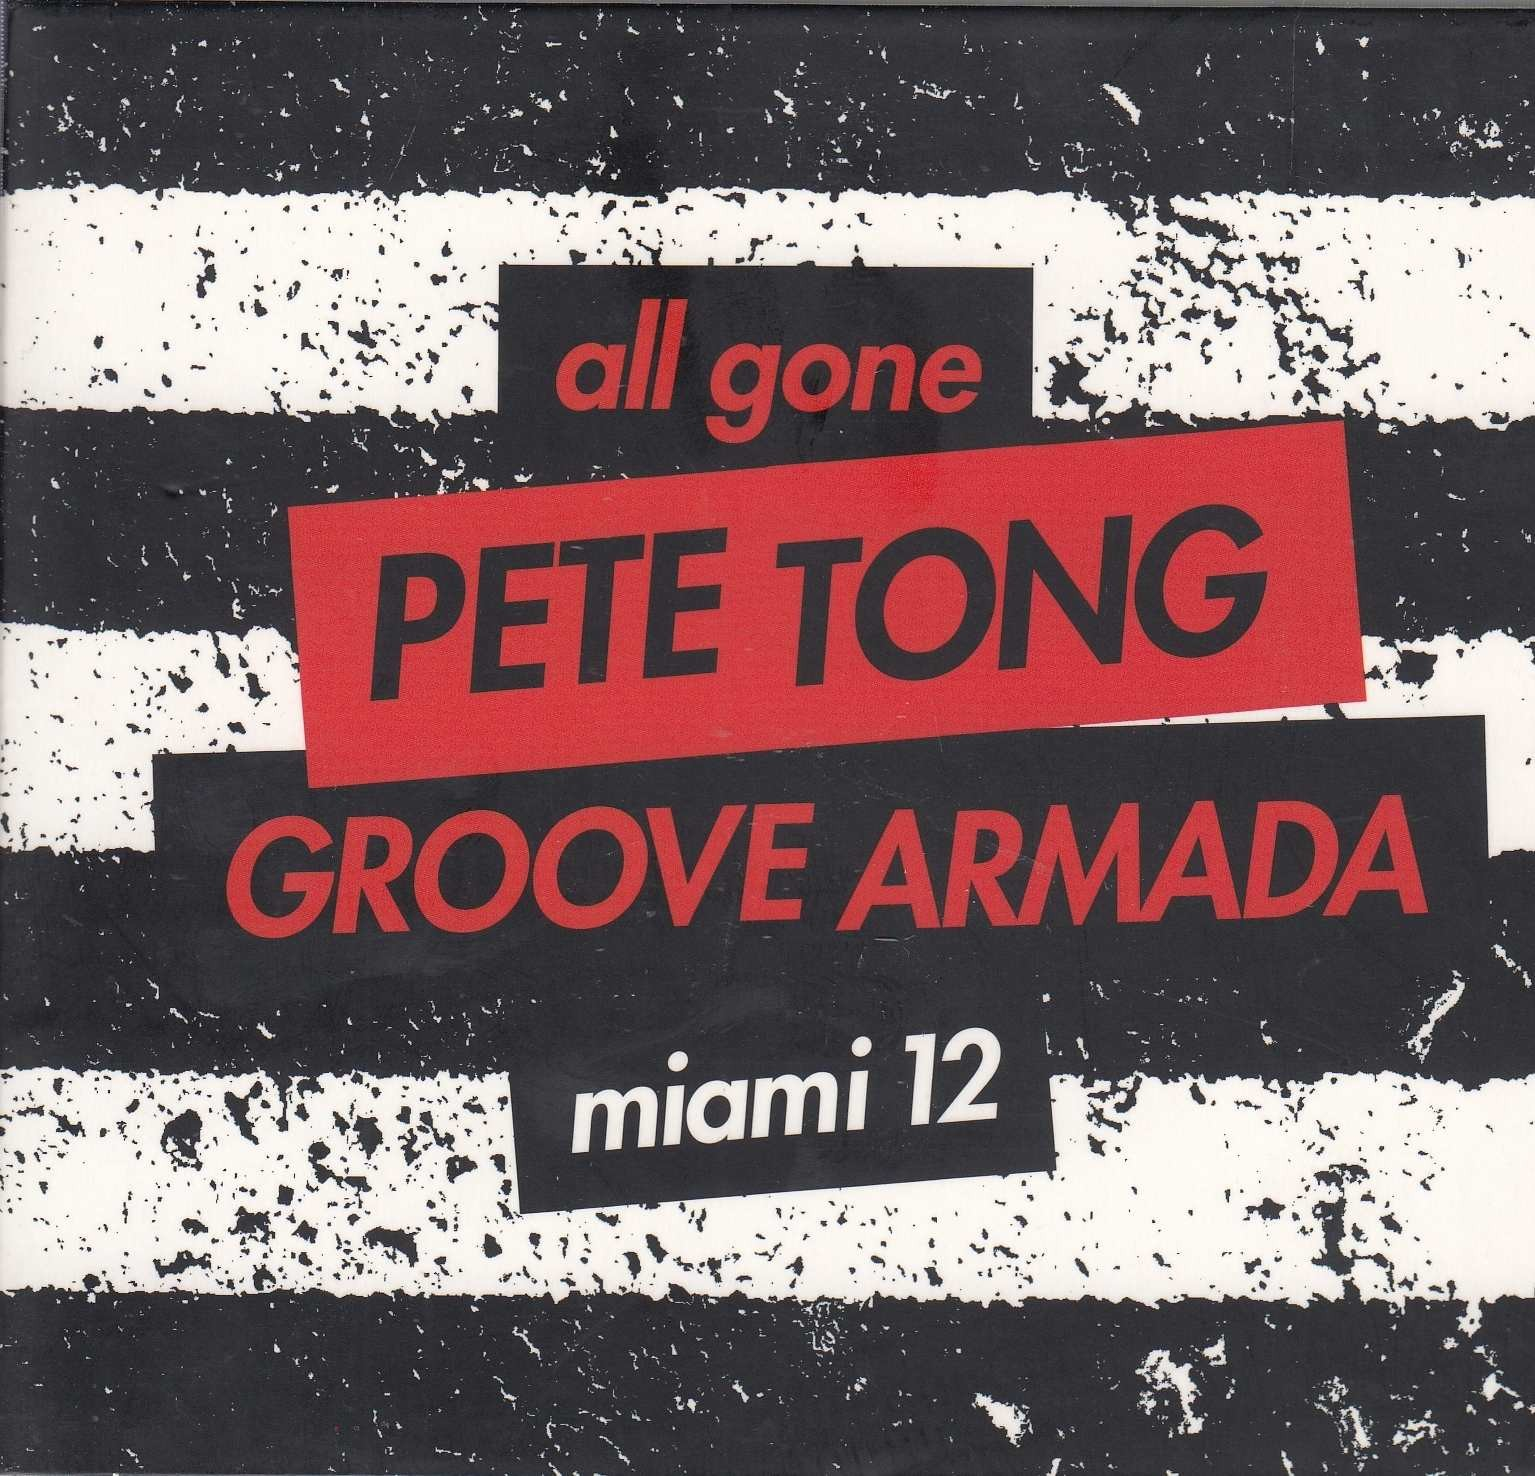 Tong Pete Groove Armada - All Gone Miami 12